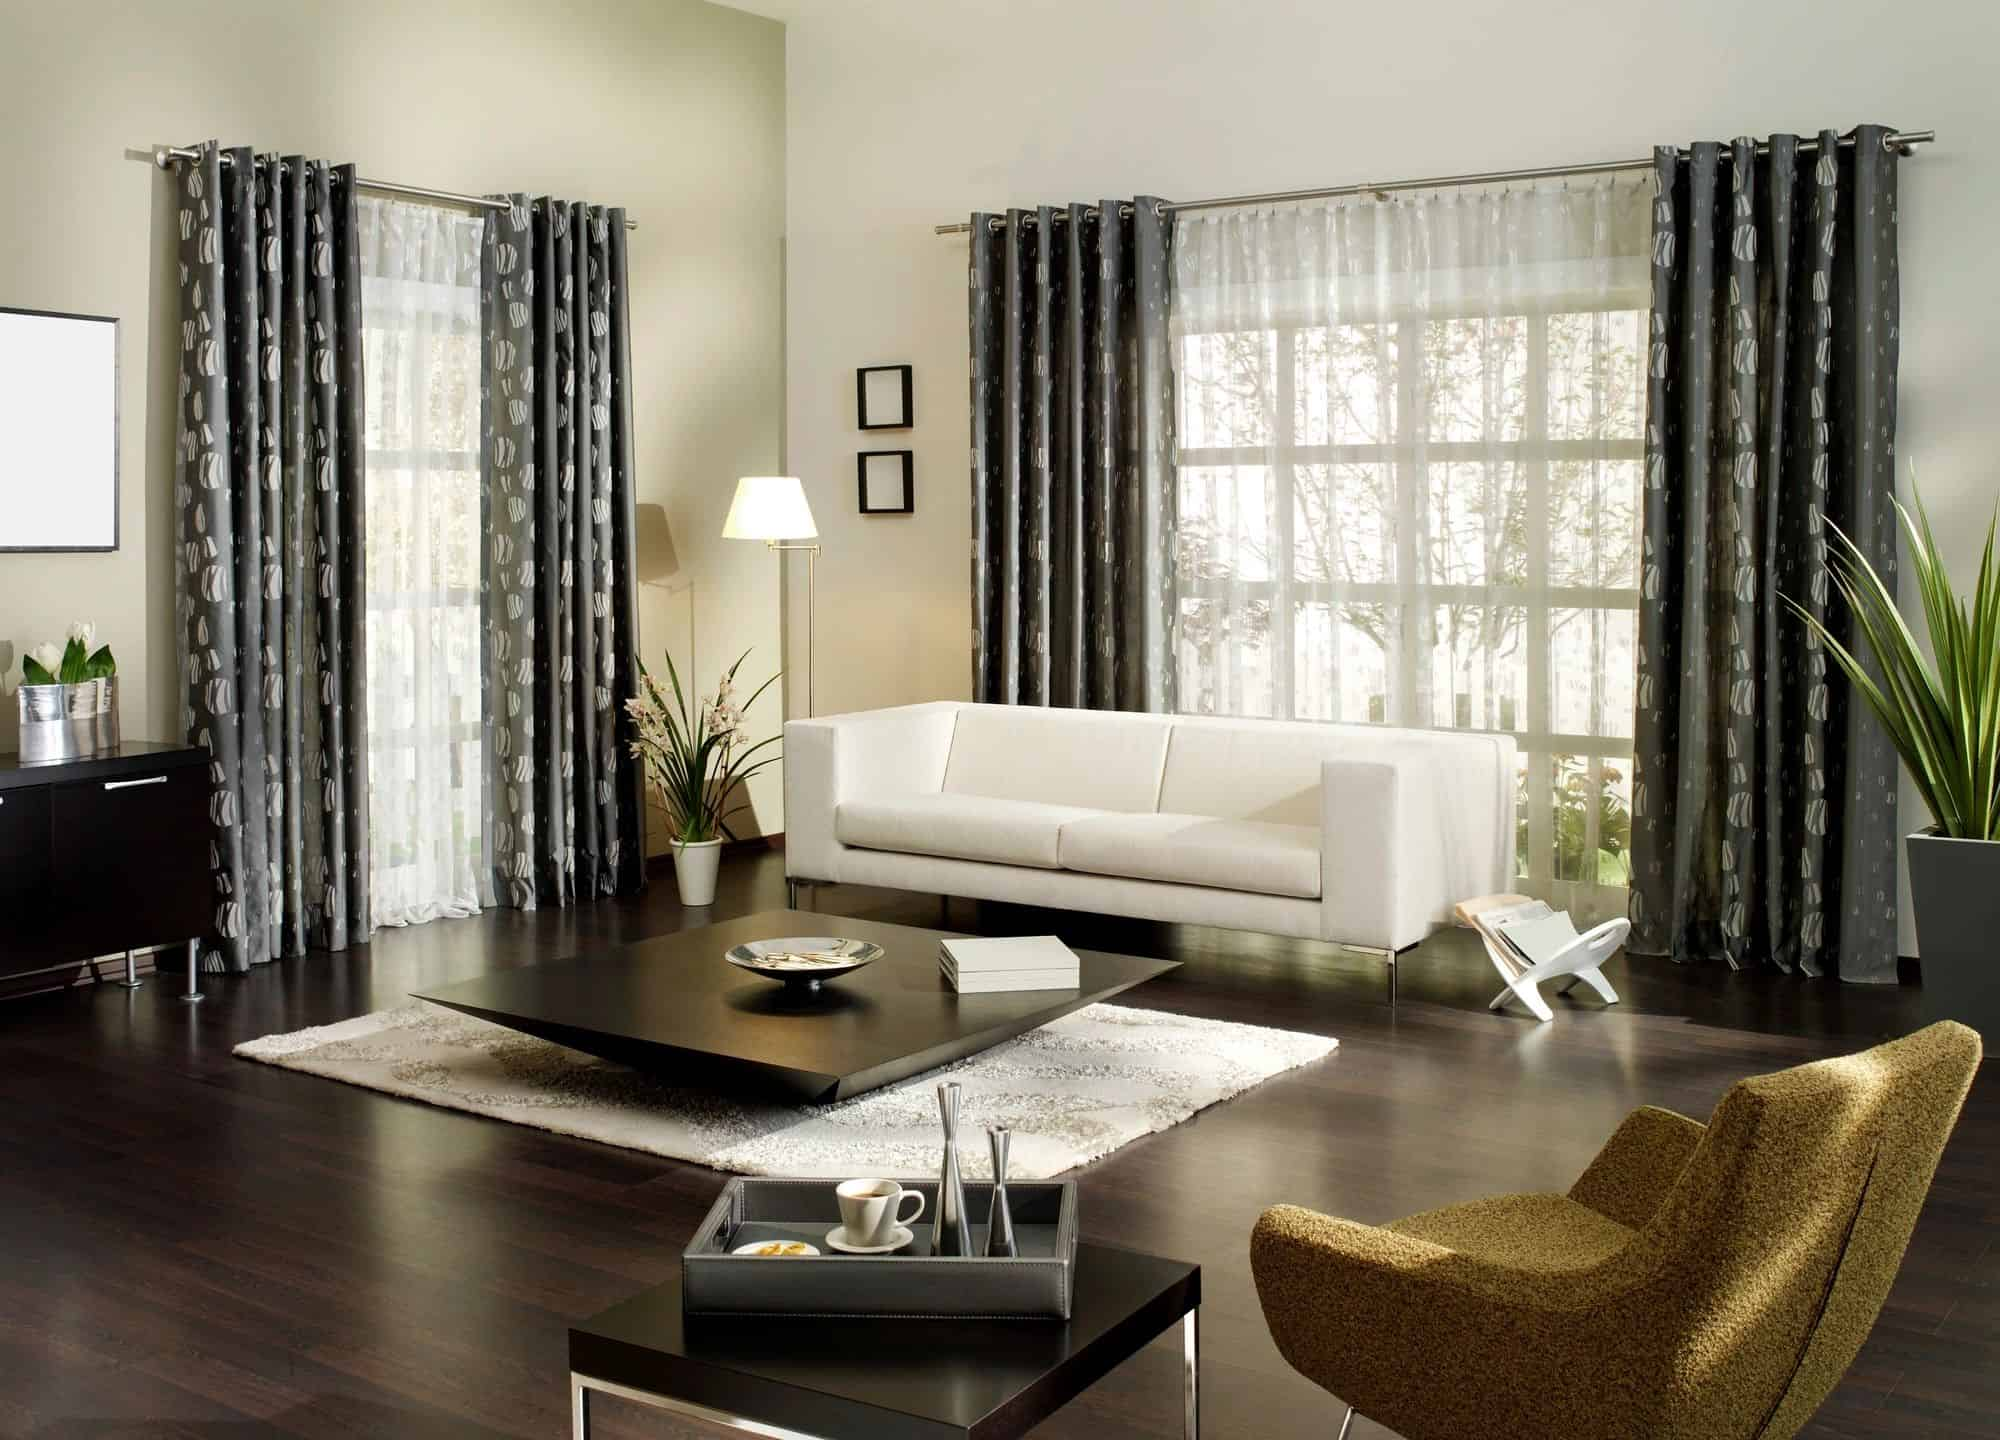 Tips to Keep Your Home Spic & Span!